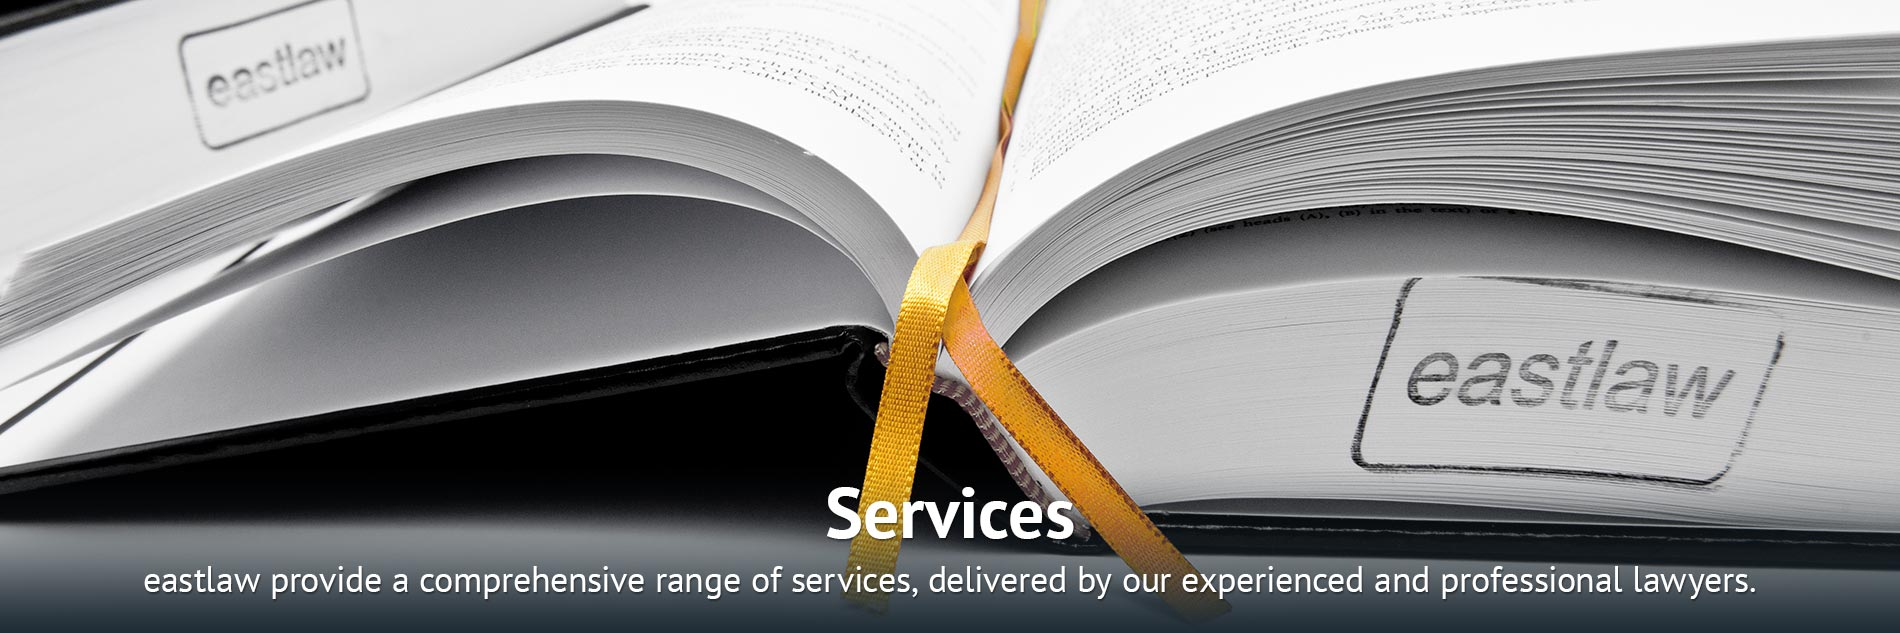 Services: eastlaw provide a comprehensive range of services, delivered by our experienced and professional lawyers.